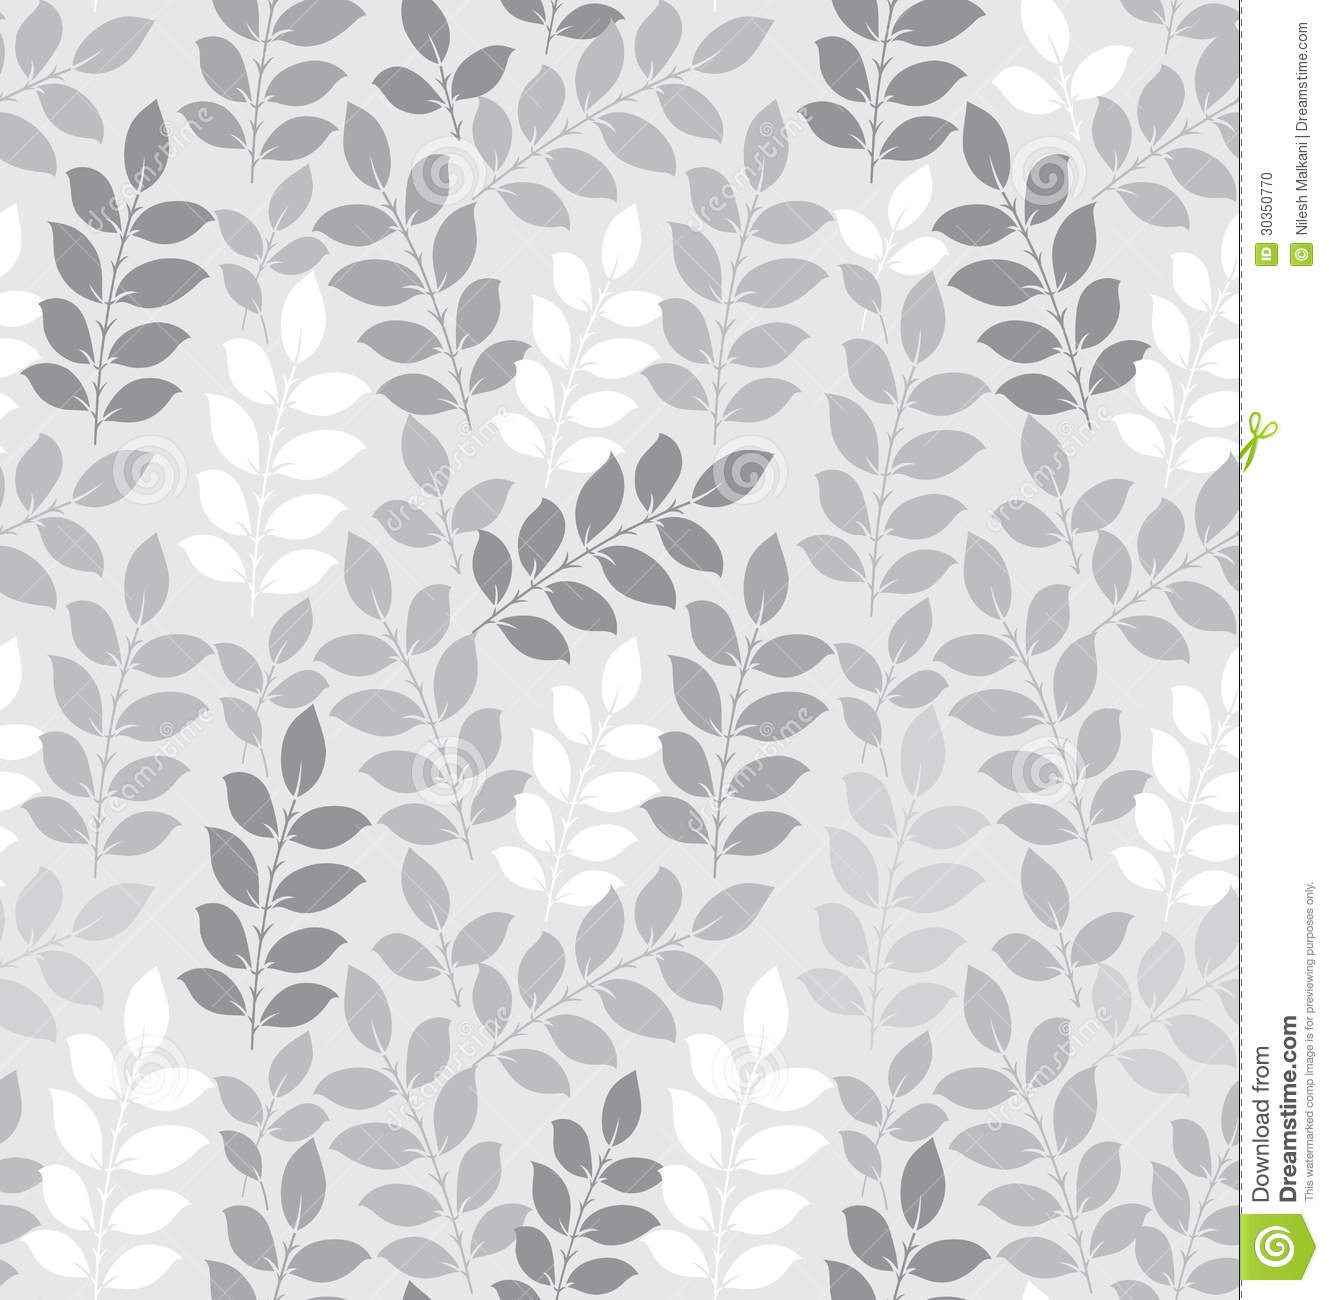 Seamless Leaves Wallpaper In Silver Stock Photo - Image